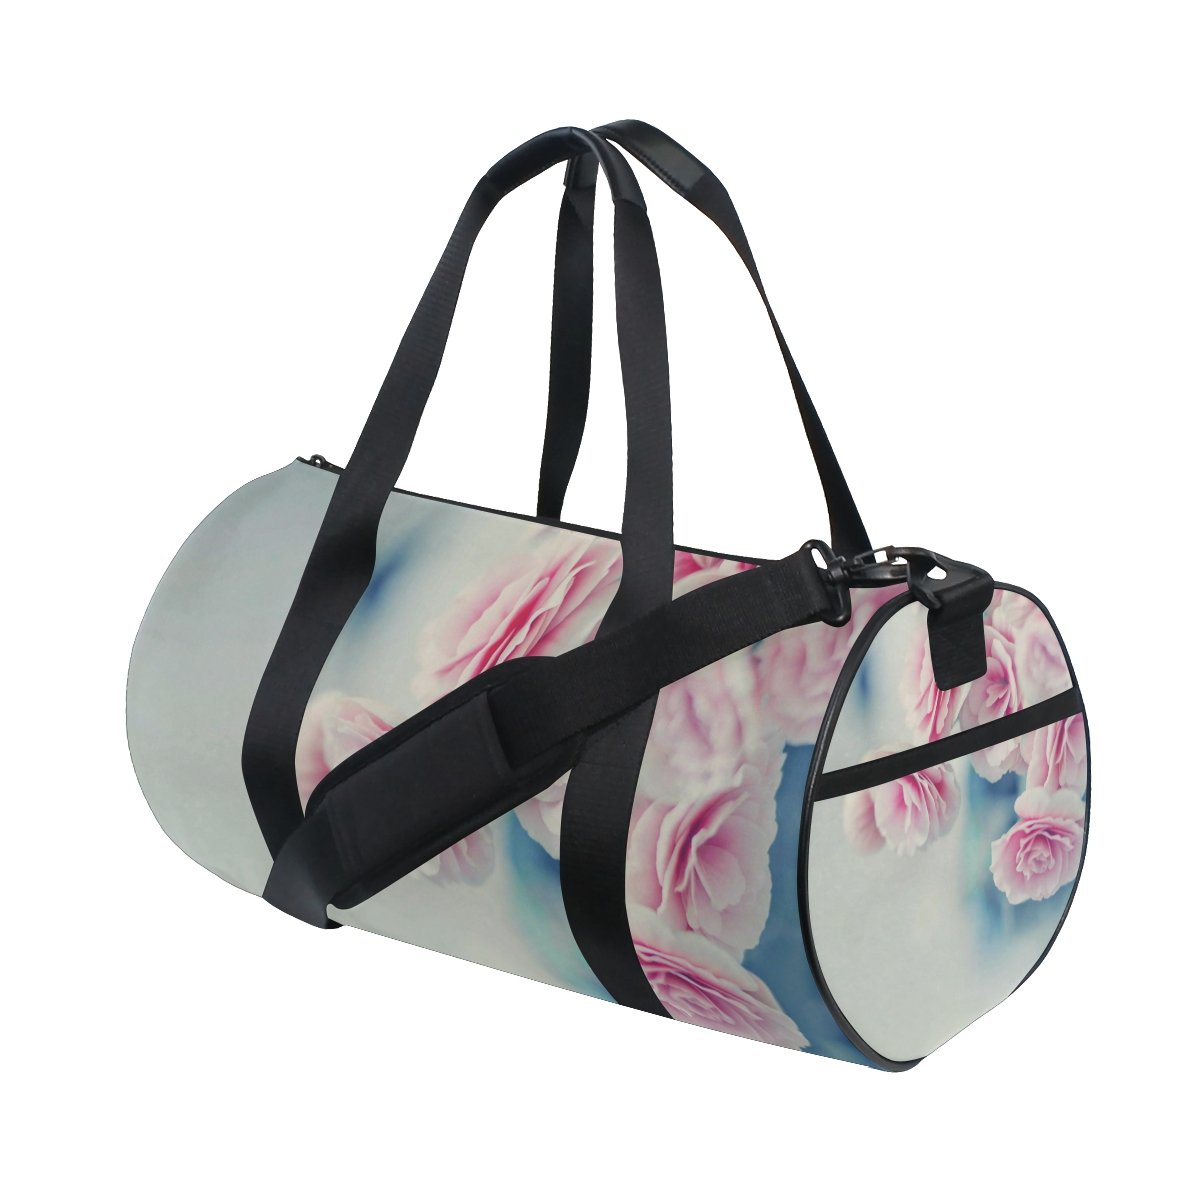 Pink Flower Plant Lightweight Canvas Sports Bag Travel Duffel Yoga Gym Bags